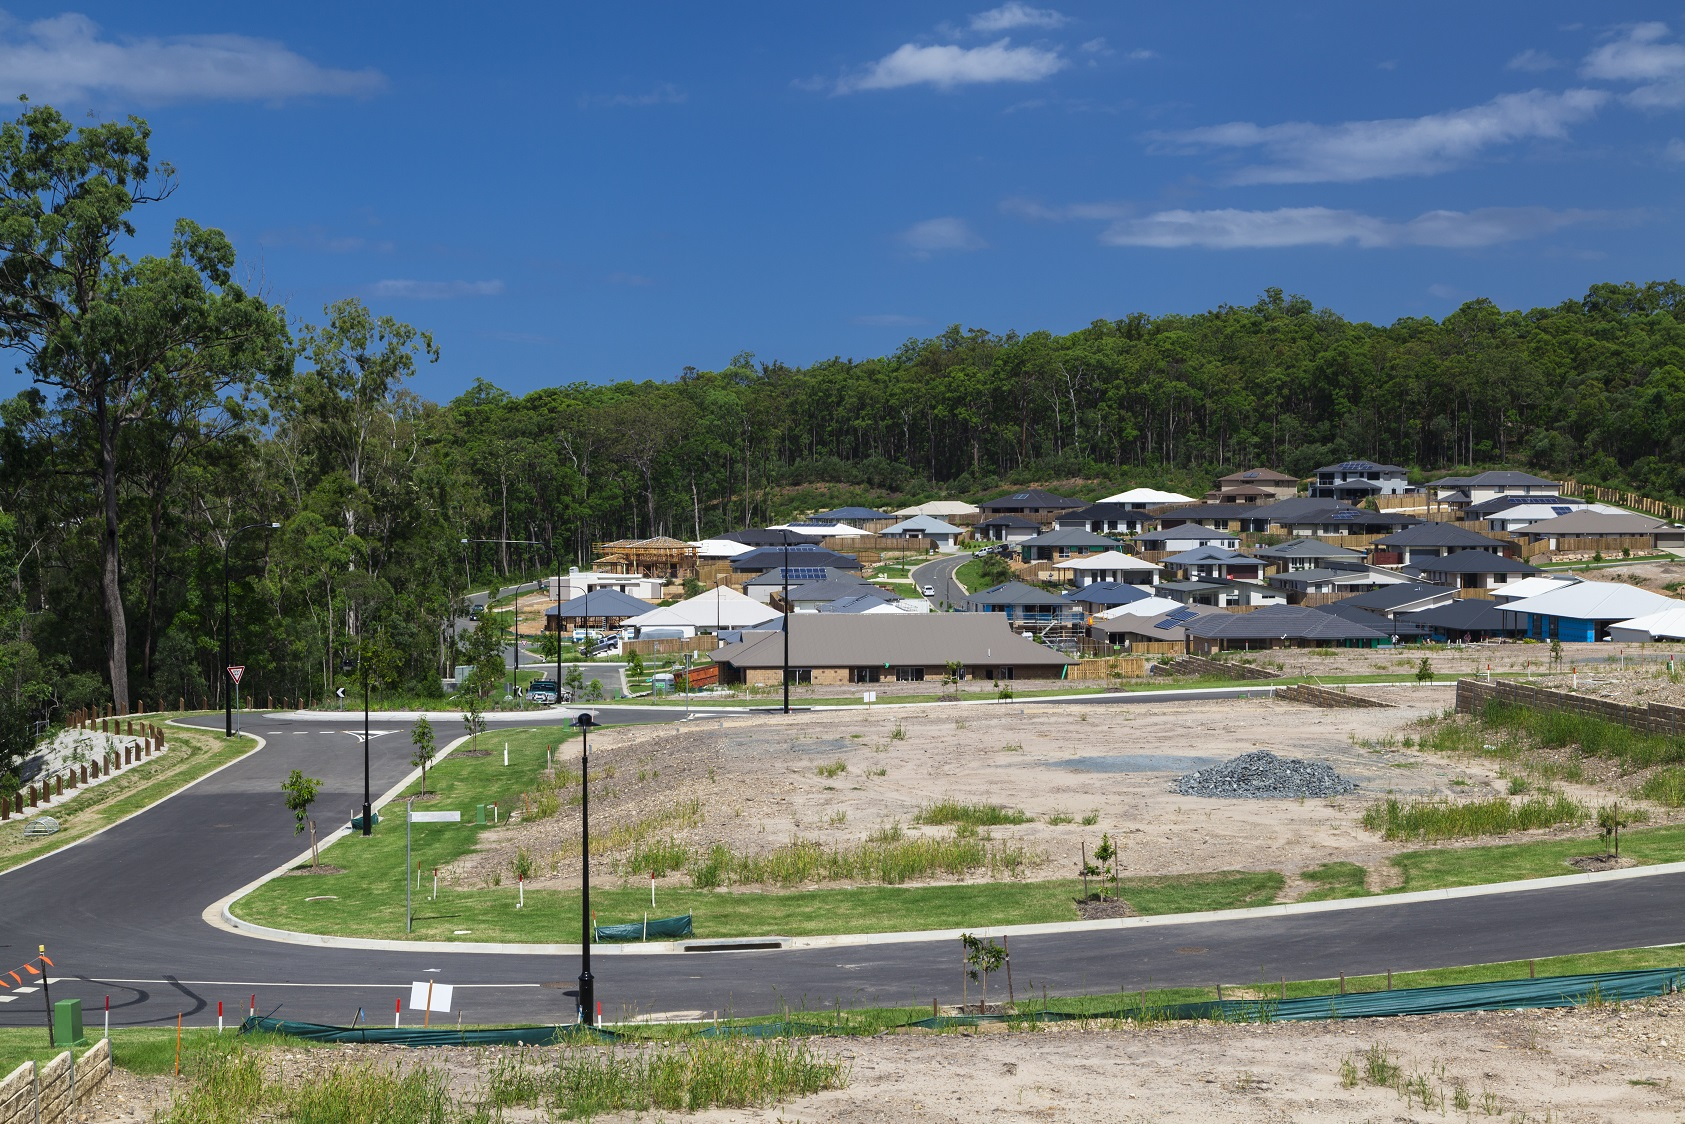 Population growth won't occur in a suburb until new supply is constructed. In many suburbs with large amounts of new construction, population growth will not be sufficient to fill all properties, meaning net demand is actually negative.